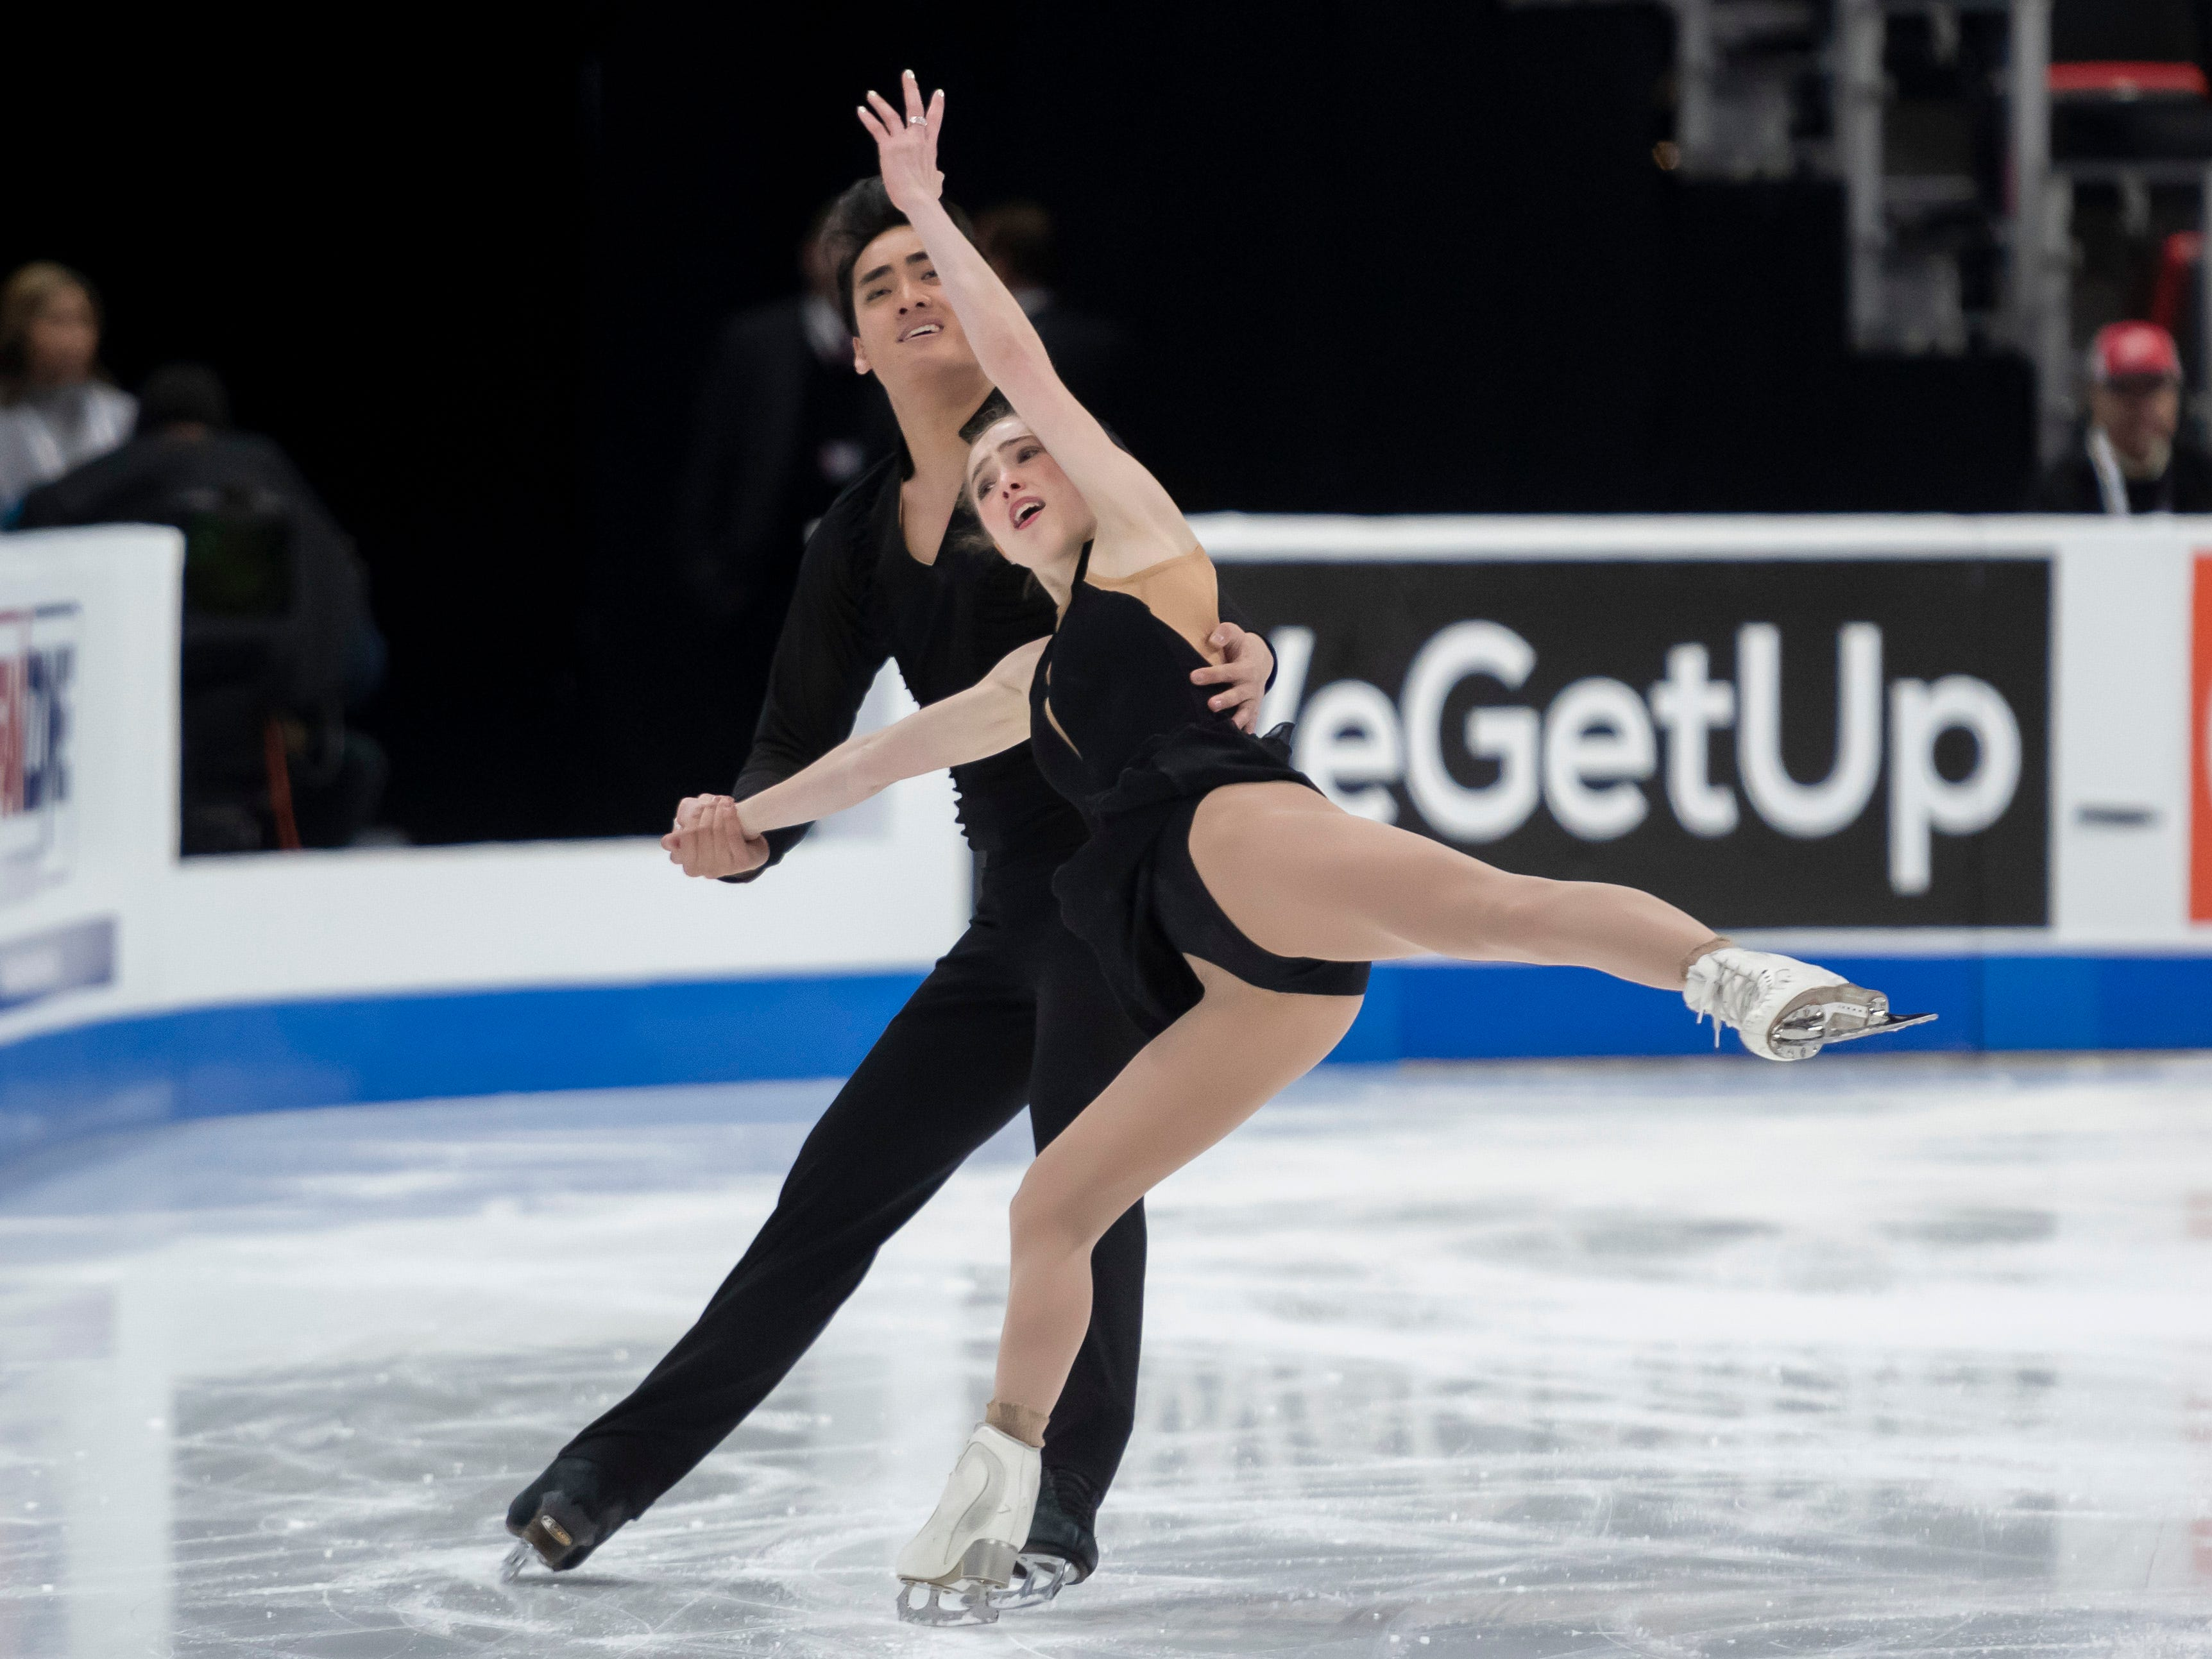 Winter Deardorff and Max Settlage compete in the senior pairs short program at the U.S. Figure Skating Championships.